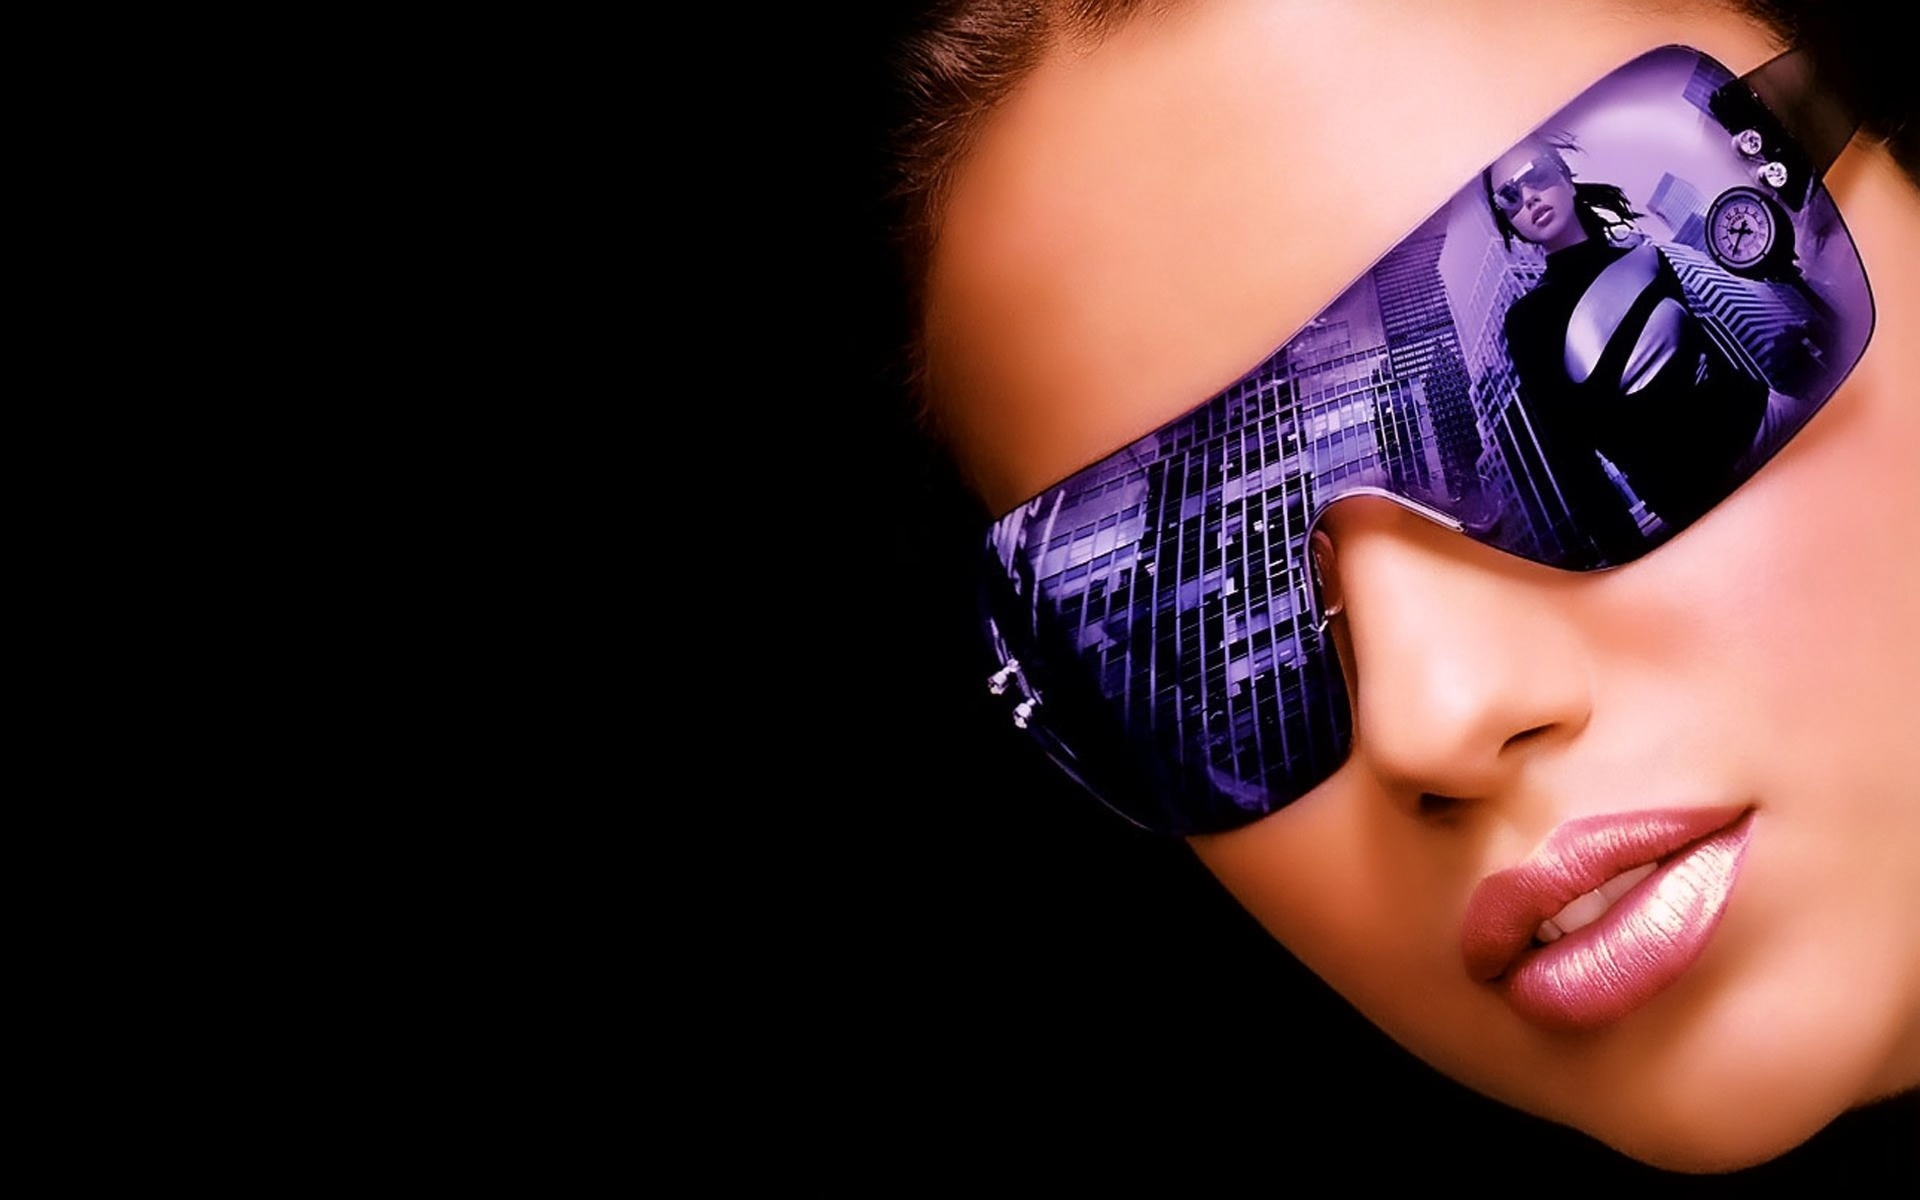 Adriana lima sunglasses hd wallpaper voltagebd Images